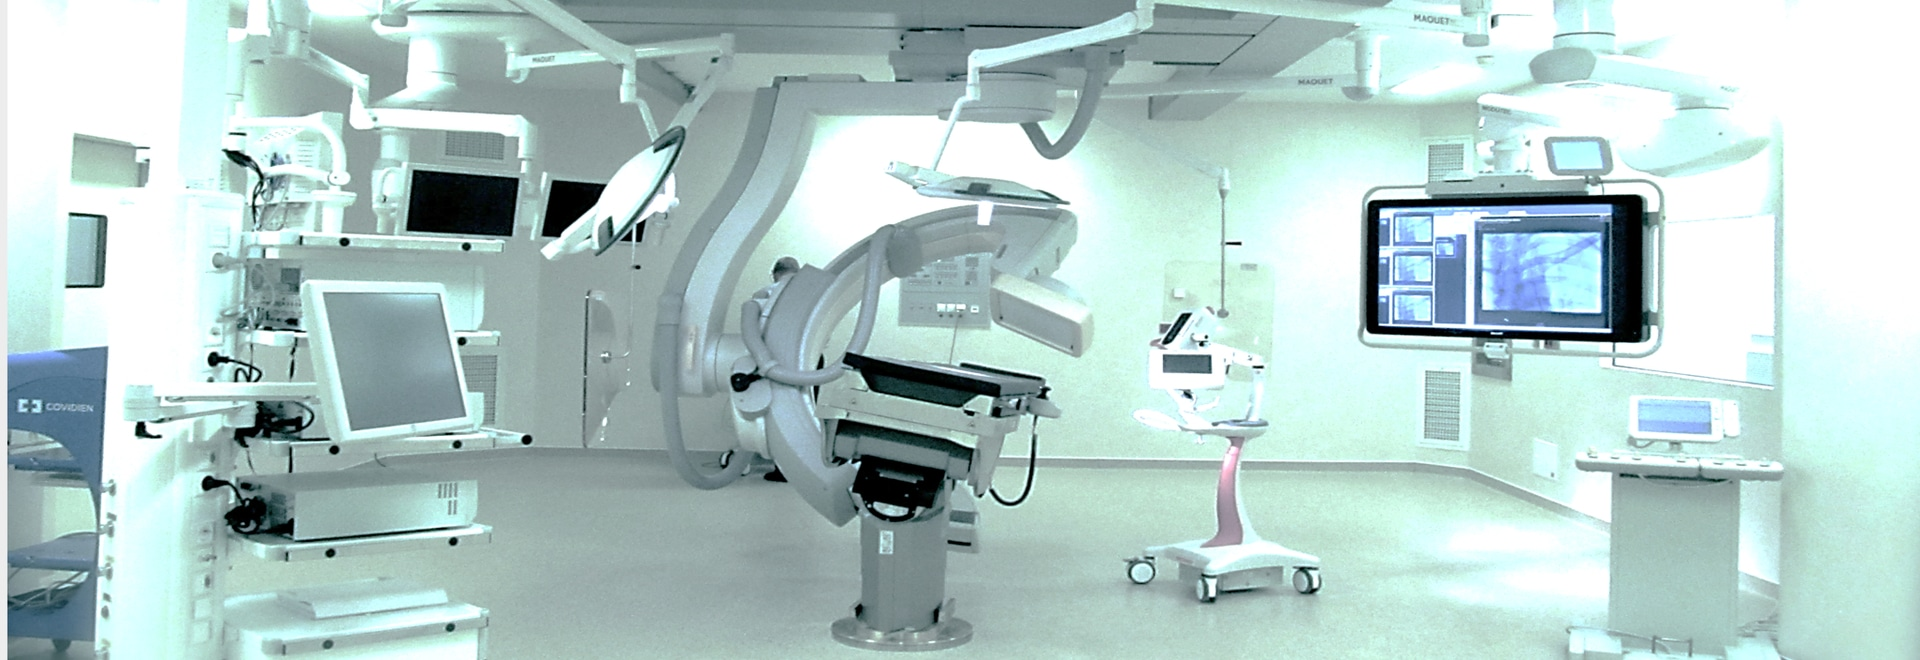 More ORs Becoming Smarter and Comfortable with FSN Medical Technologies